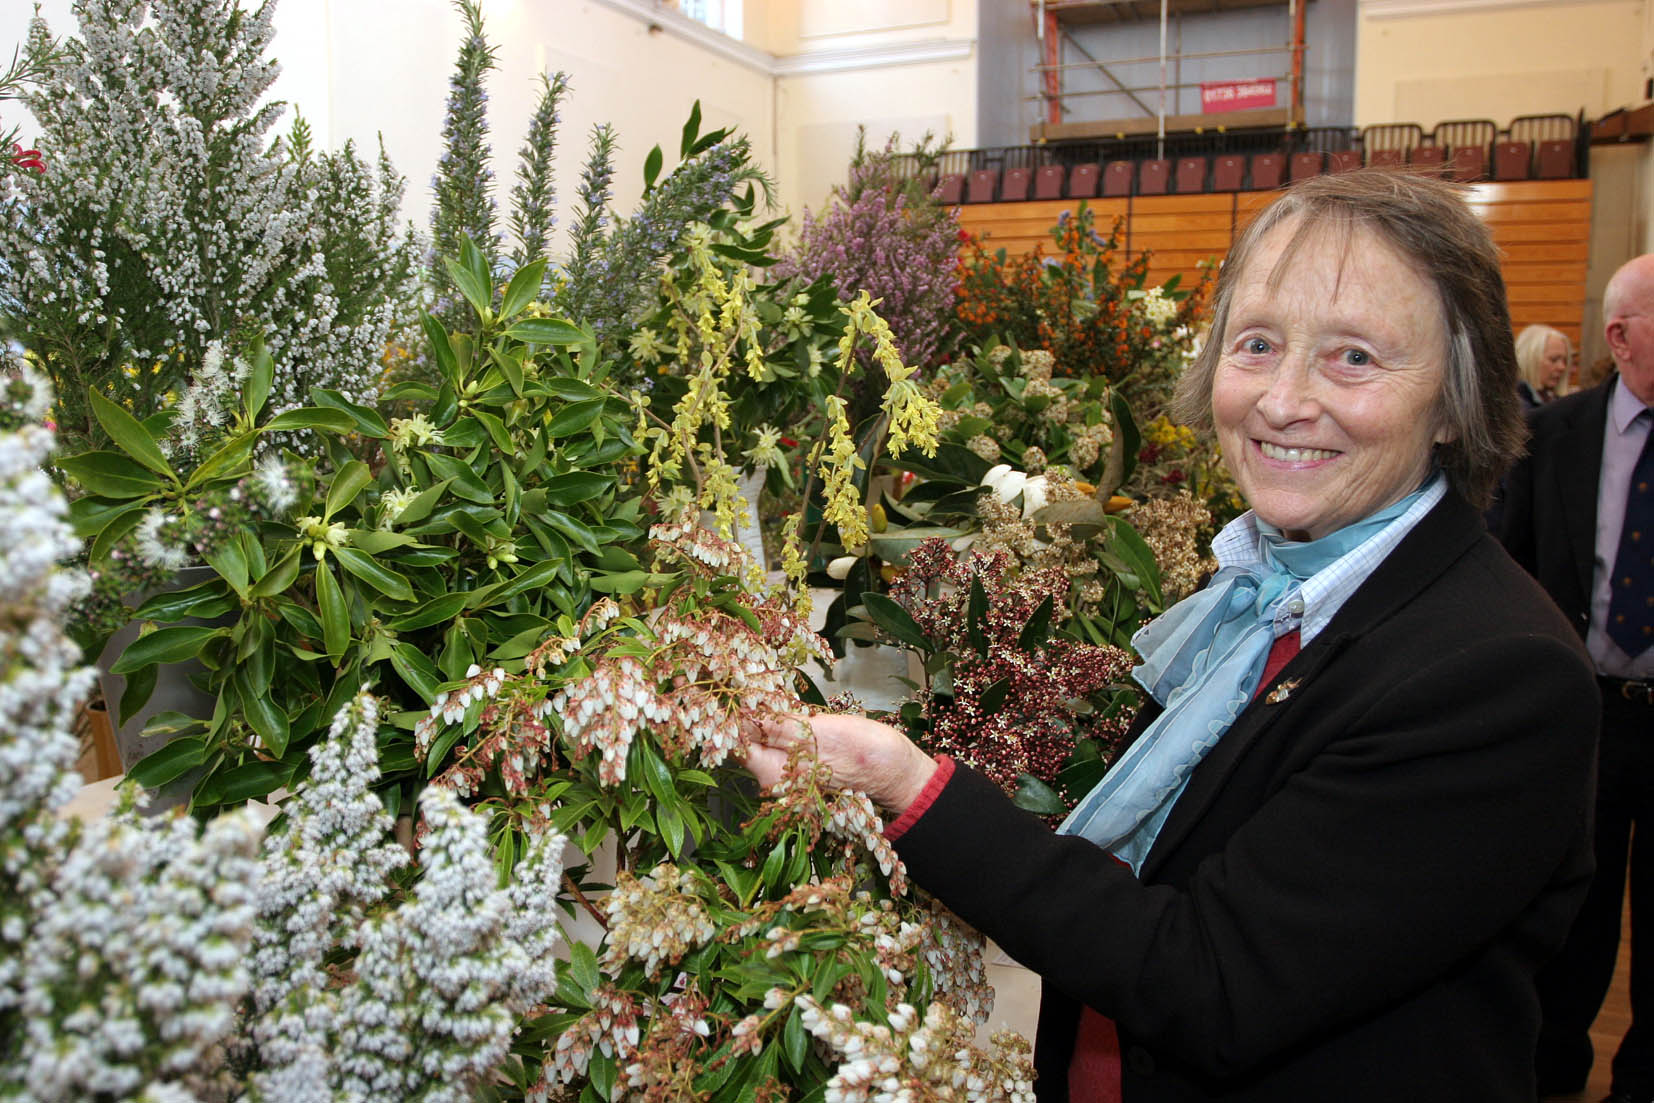 The 84th West Cornwall Spring Show organised by The West Cornwall Horticultural Society in St JohnÕs Hall Penzance. Lady Banham from Penberth Gardens checks her entry of six shrubs which took 1st place in the Ornamental Shrub Section. Pic by Roger Pope/CIOSP